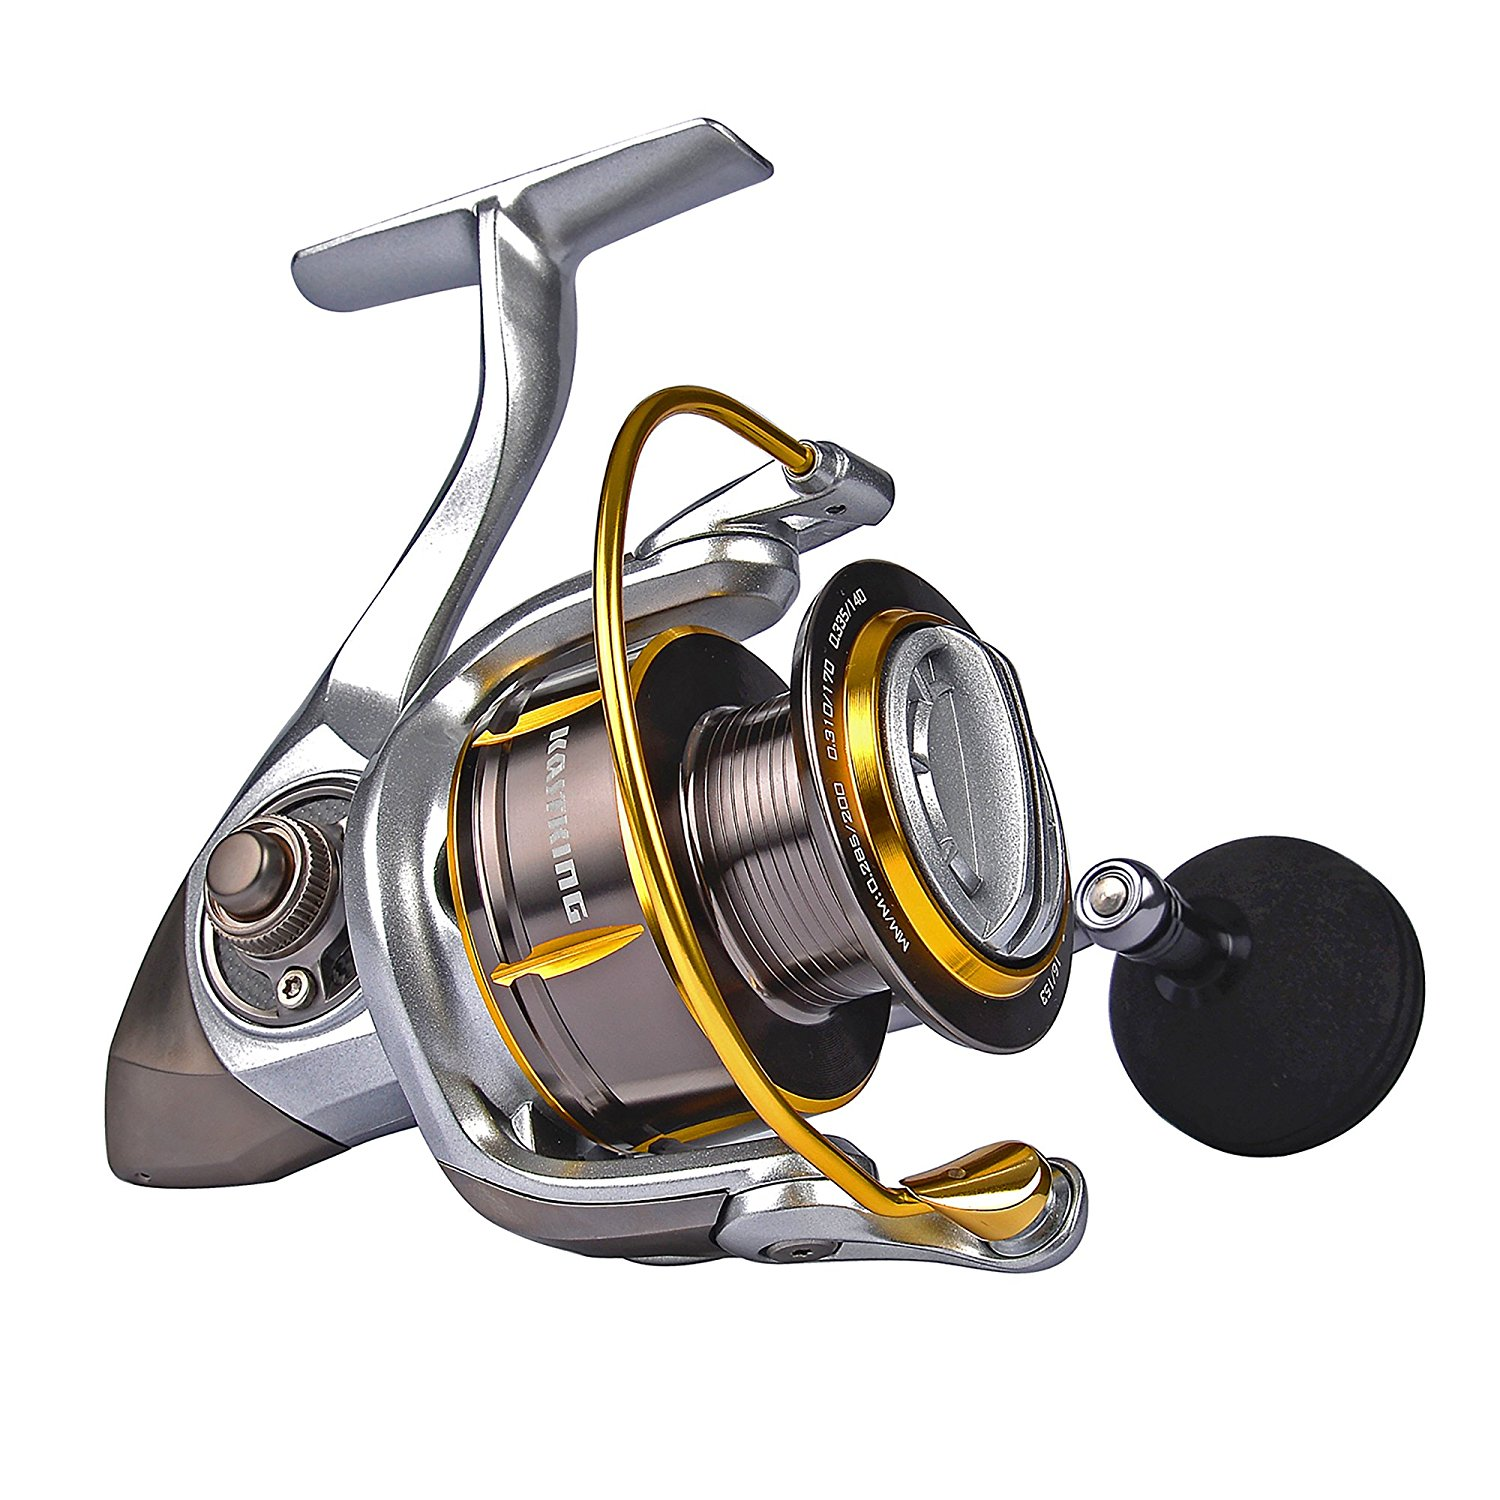 KastKing Kodiak Saltwater Spinning Reel